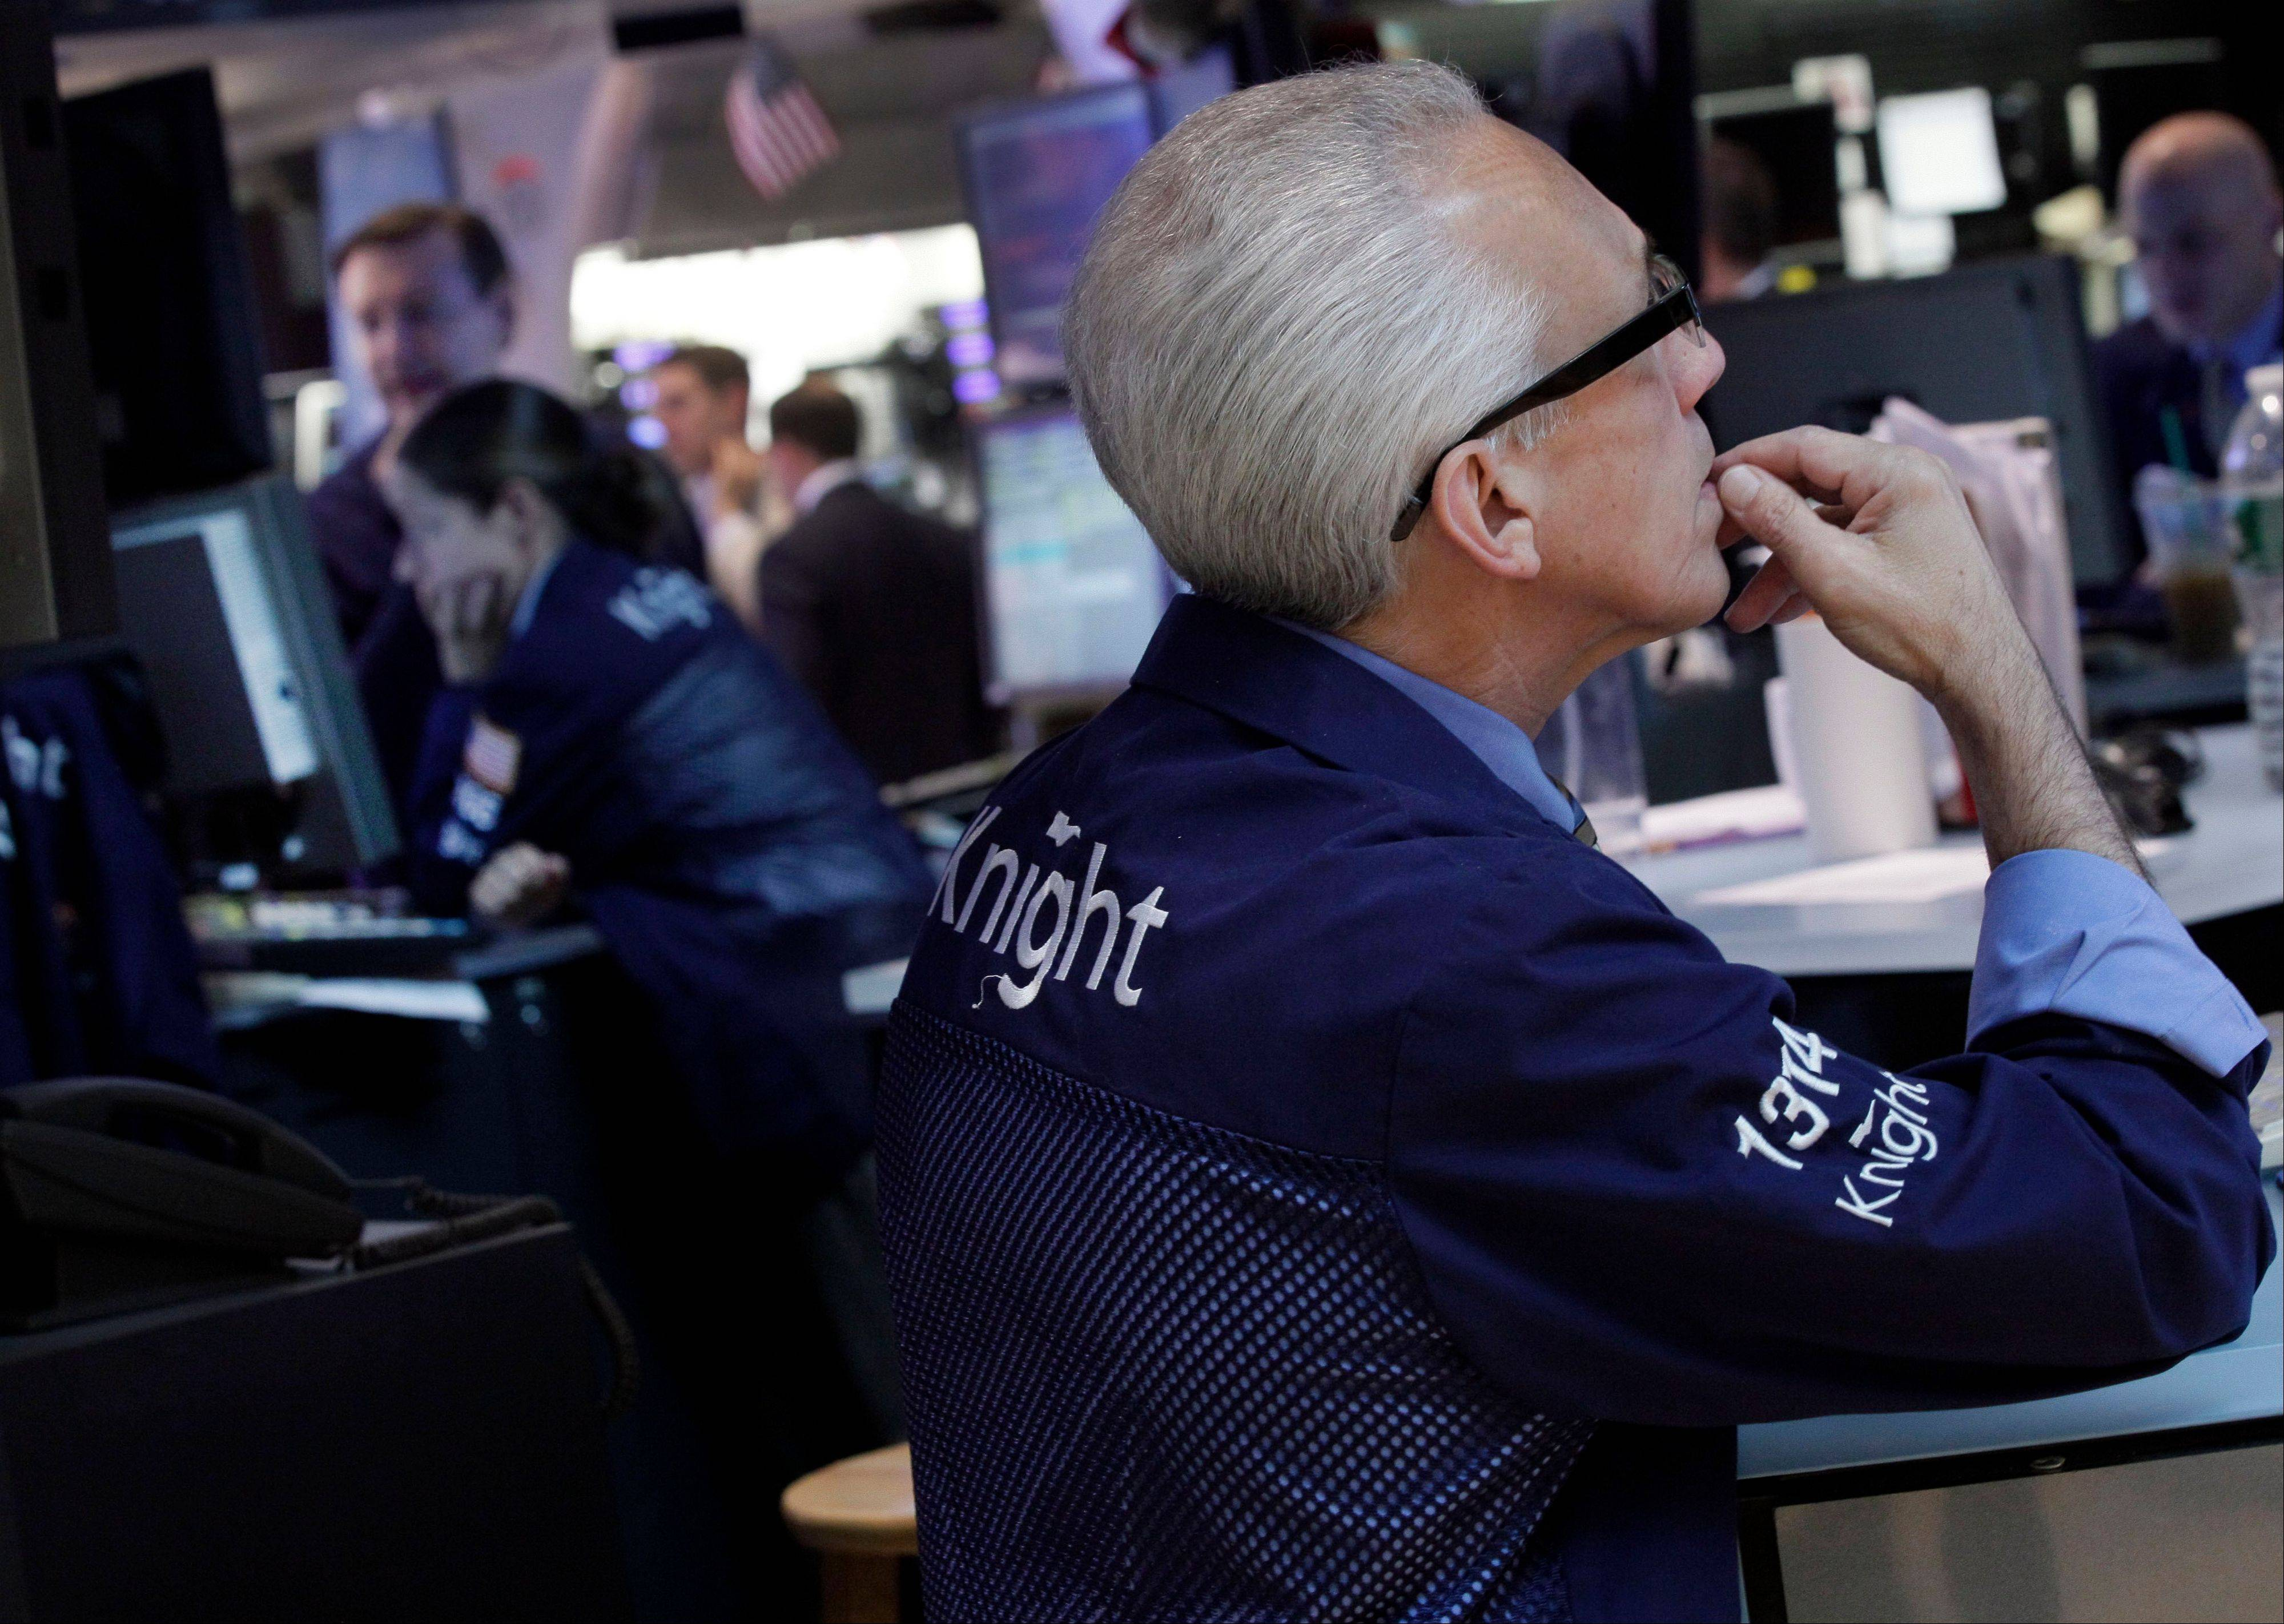 U.S. stocks retreated, trimming the third straight monthly advance for the benchmark Standard & Poor's 500 Index, amid concern about a worsening of Europe's debt crisis and of a further slowdown of the global economy.